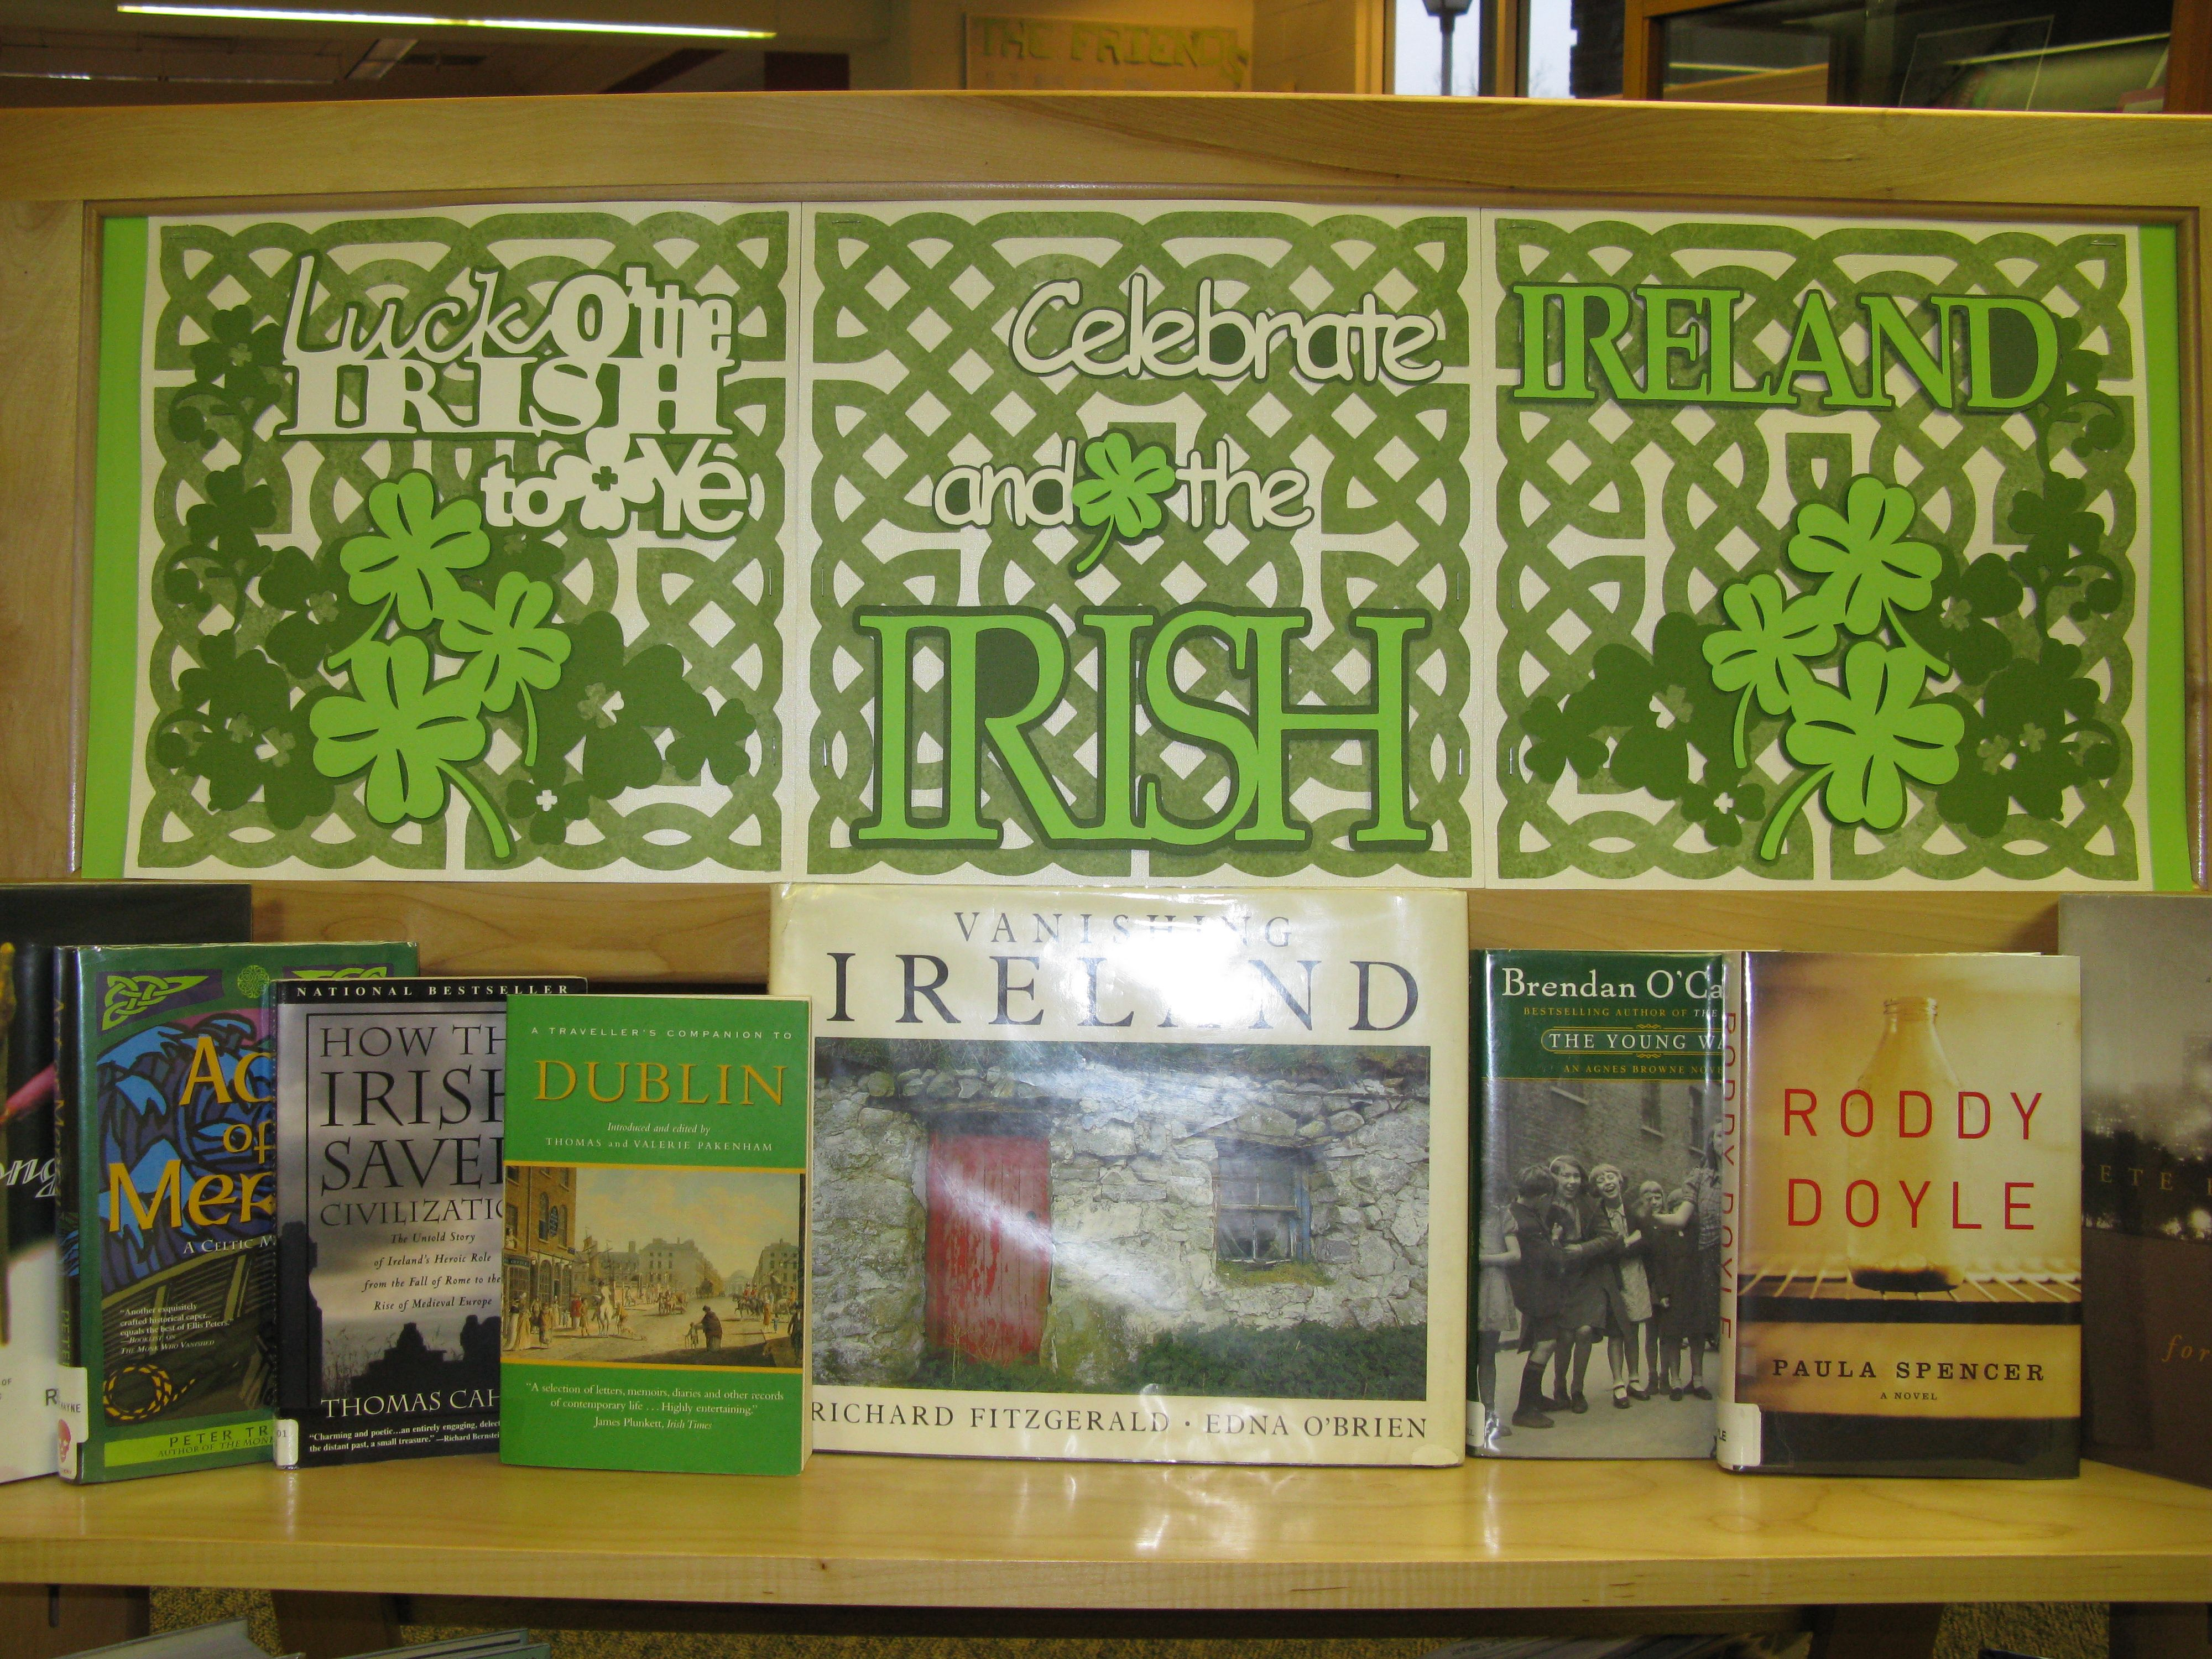 westwood library st patrick u0027s day book display made on my cricket